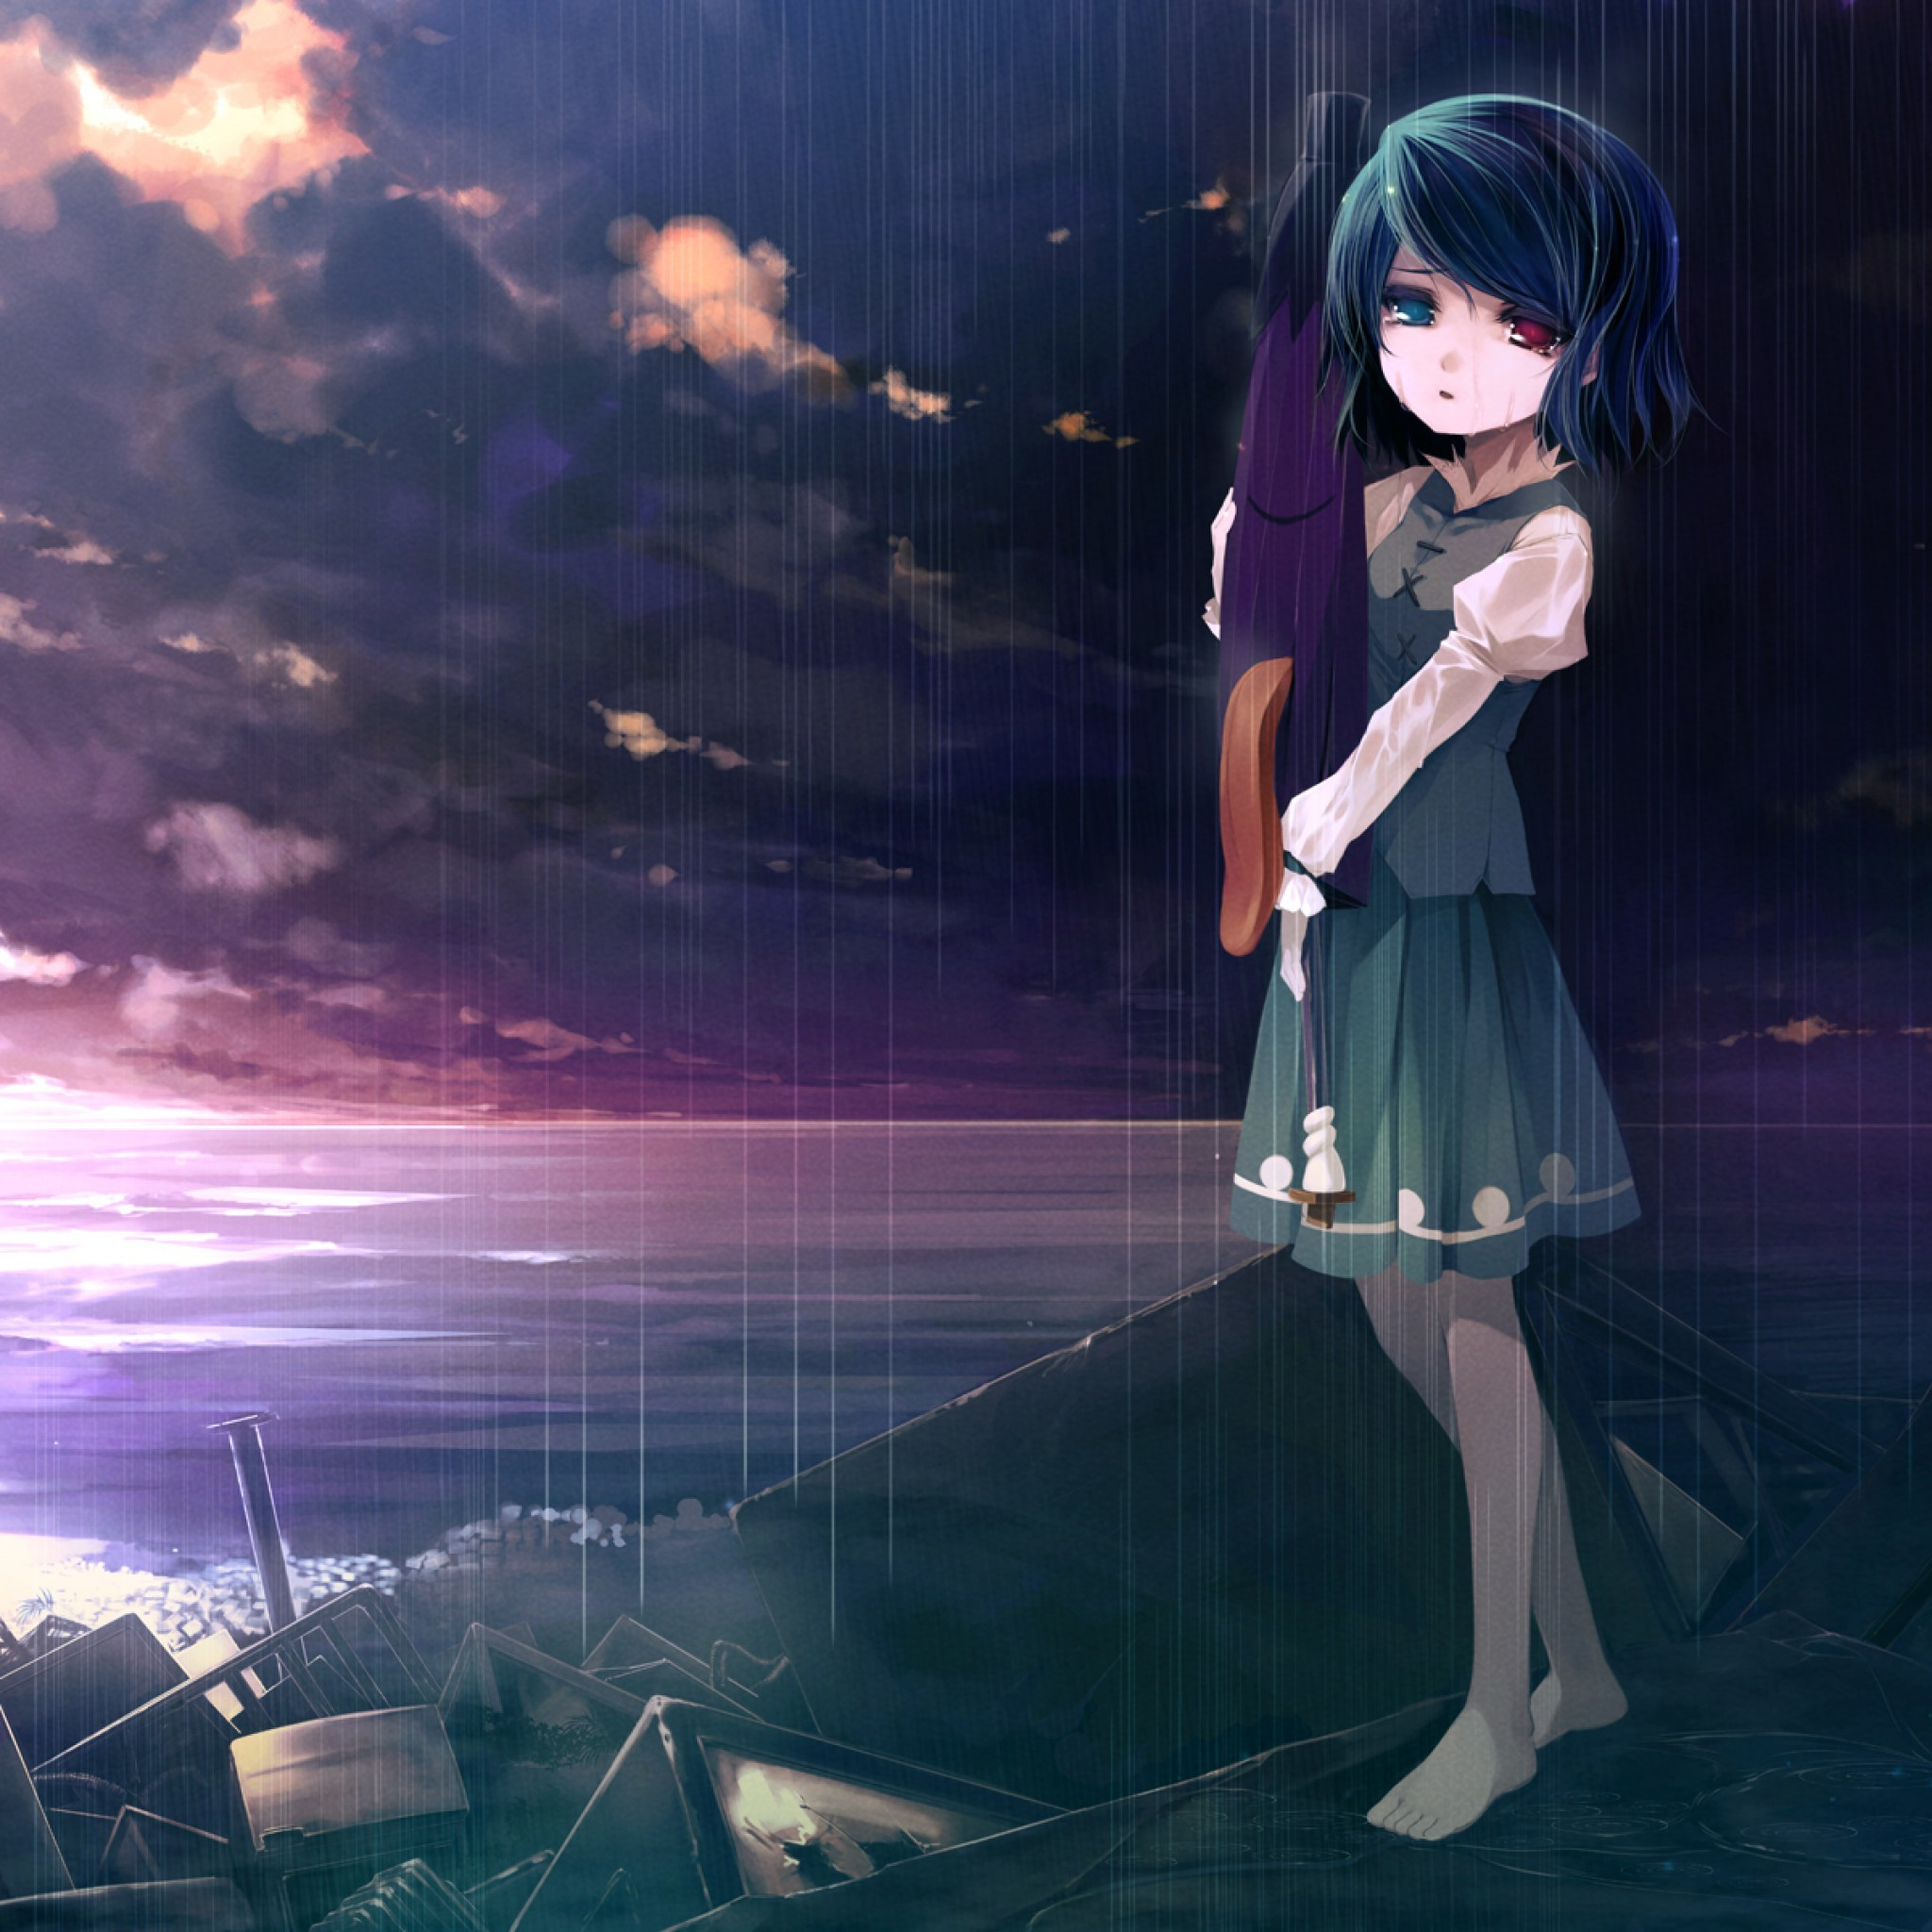 Sad Anime Wallpaper (64+ Images